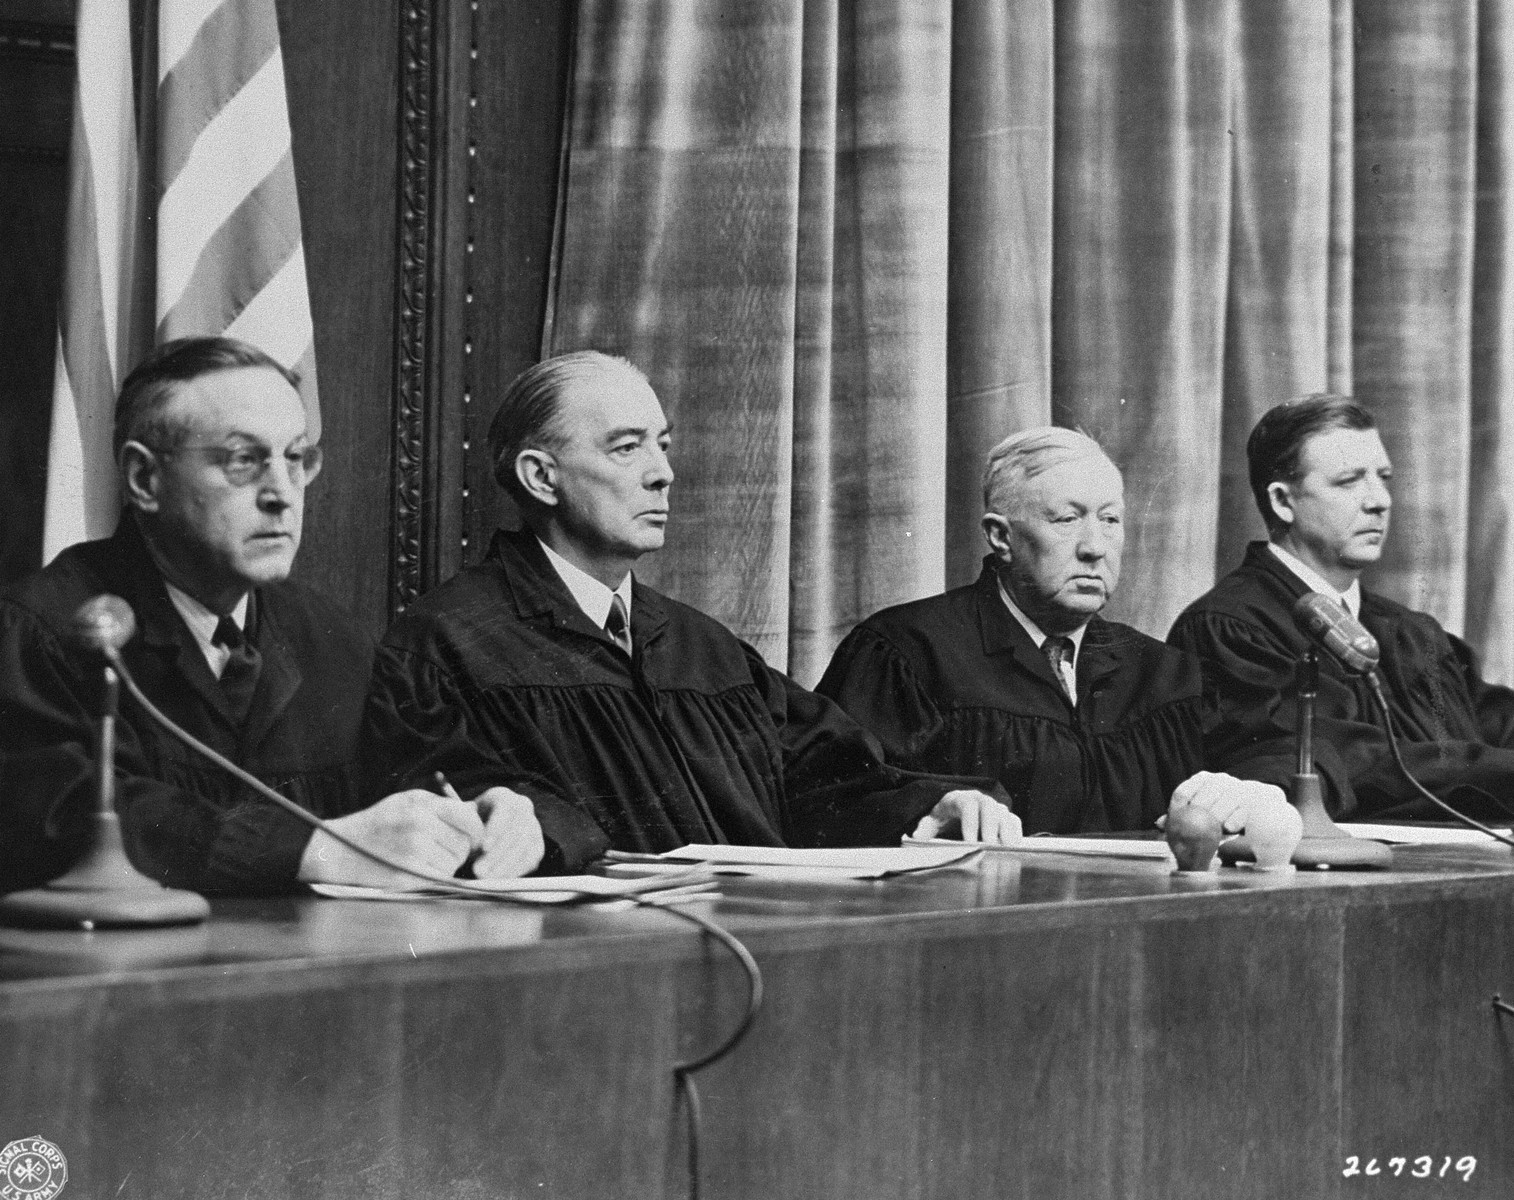 The Military Tribunal I judges hearing the Doctors Trial.  From left to right are Harold L. Sebring, Walter B. Beals, Johnson T. Crawford, and Victor C. Swearingen.